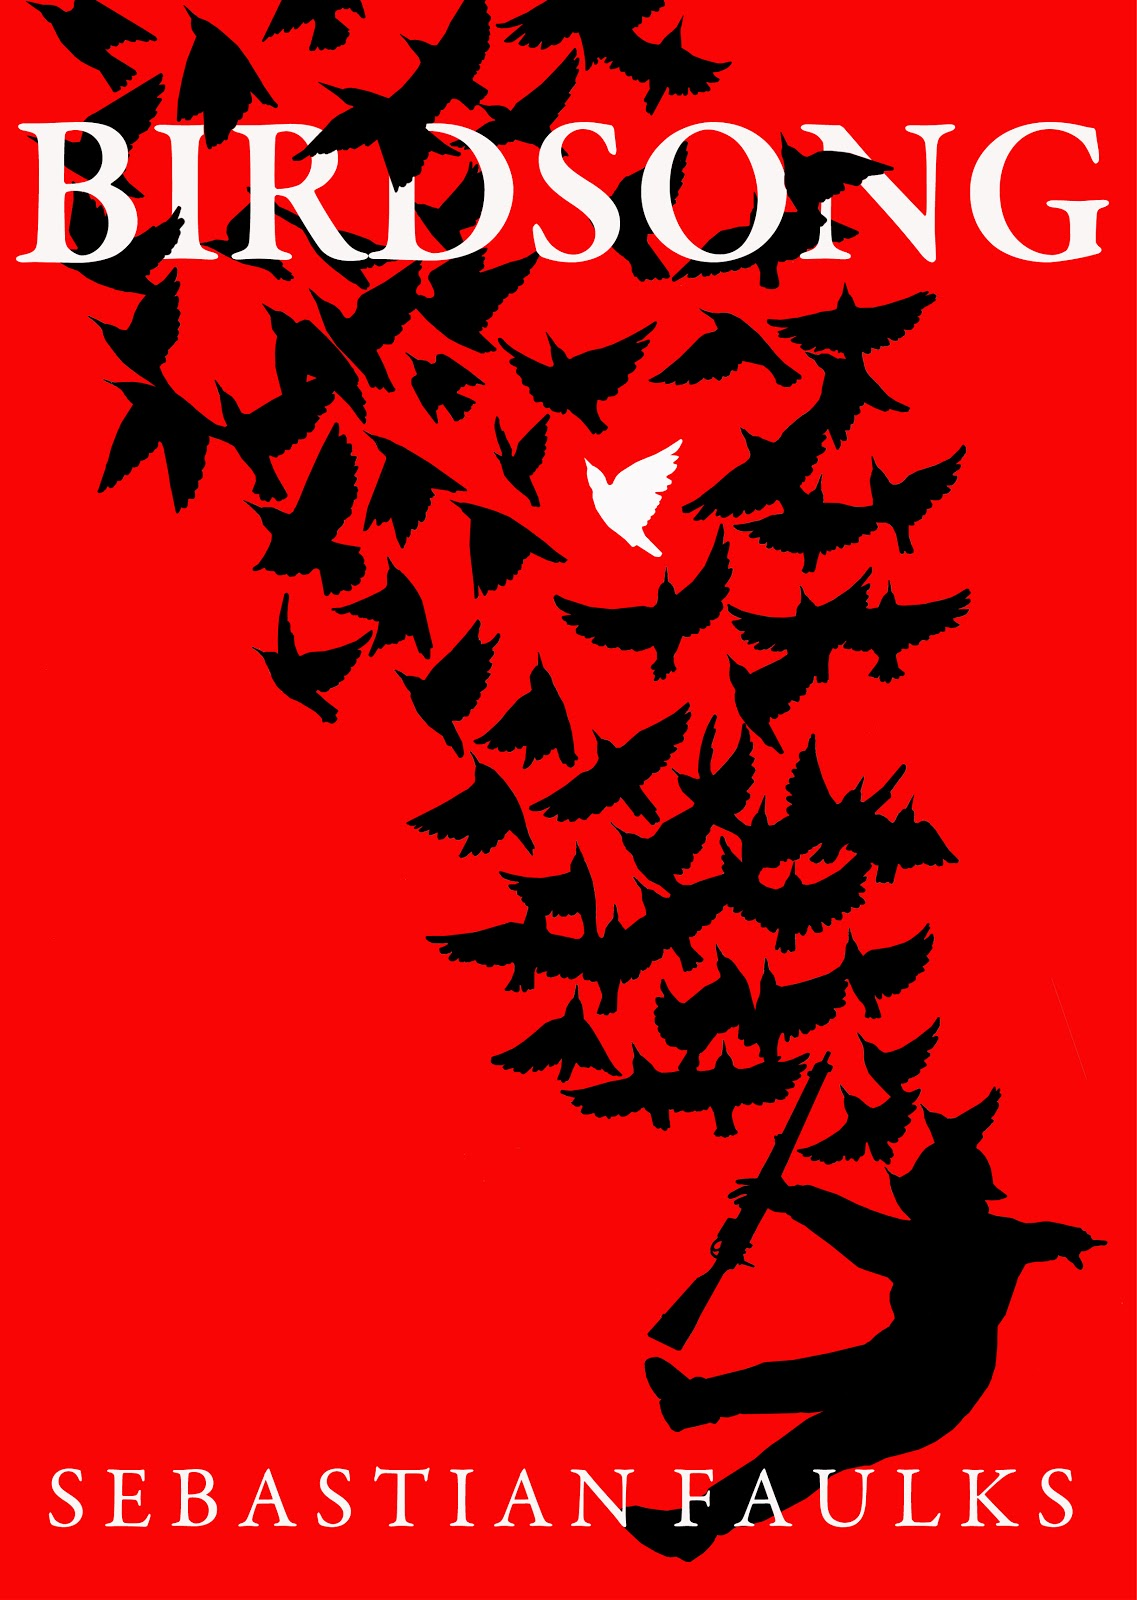 Book review birdsong sebastian faulks